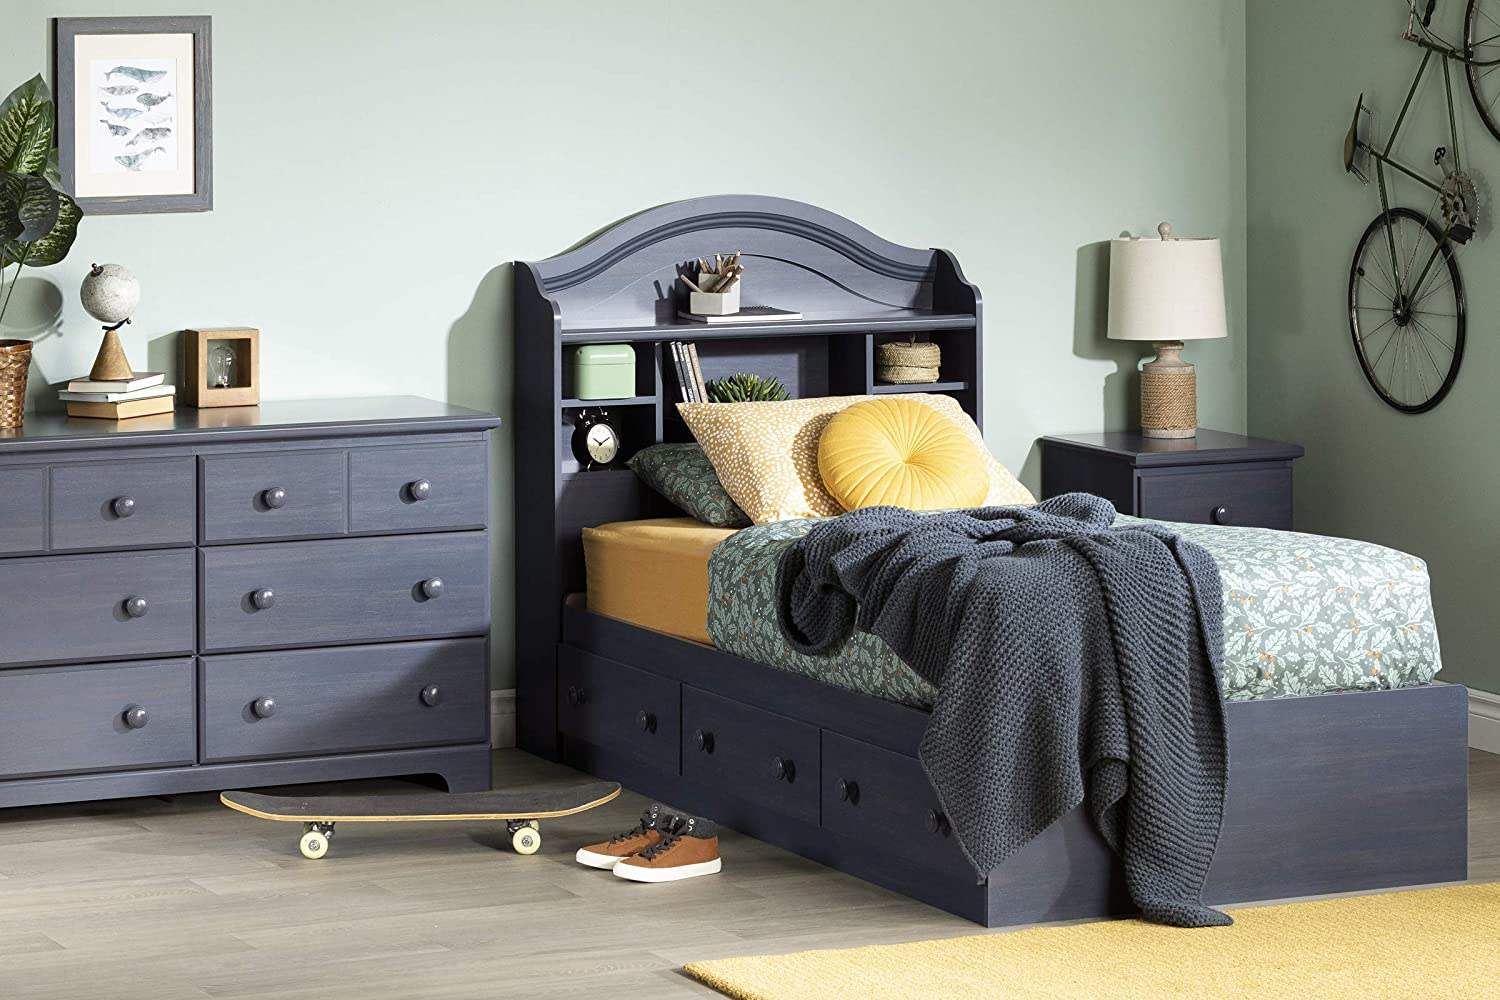 Blueberry Summer Breeze Collection South Shore Furniture 6 Drawer Dresser